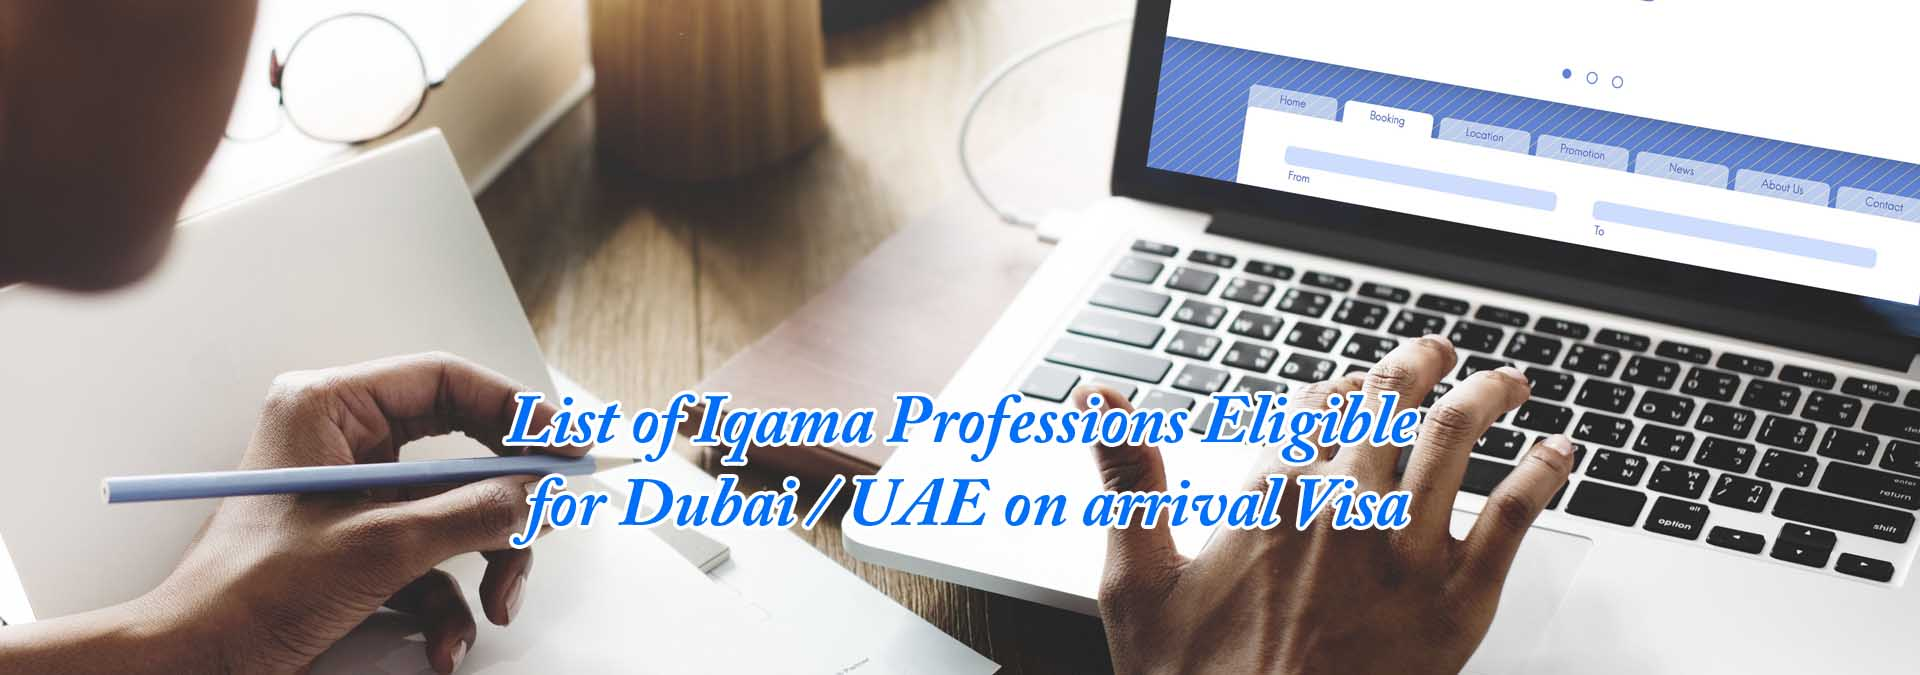 List of Iqama Professions Eligible for Dubai / UAE on